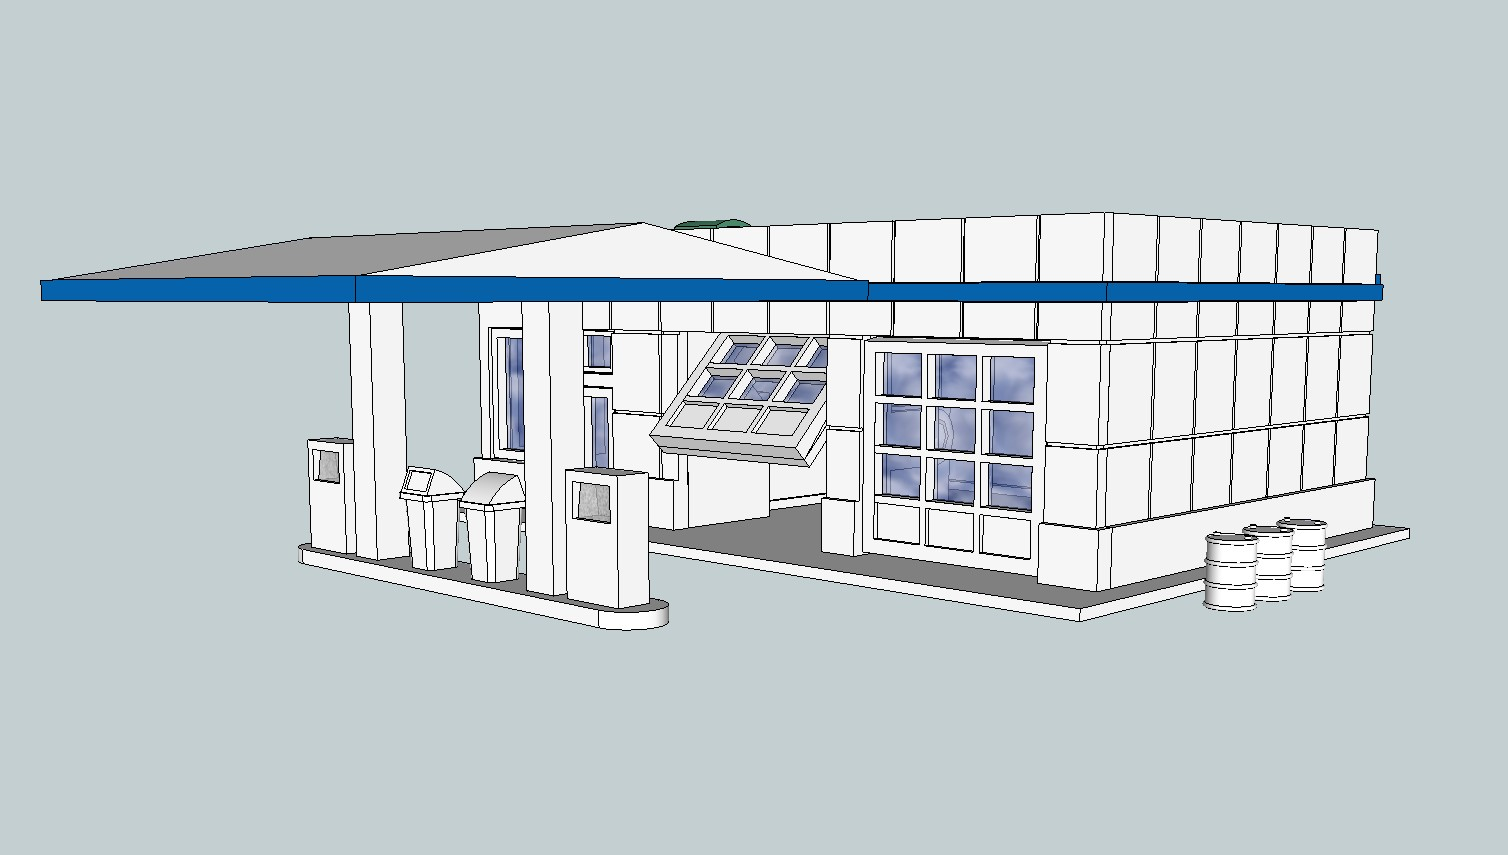 Door_Partially_Open.jpg Download free STL file HO Scale Service Station with Opening Doors • 3D printable template, kabrumble